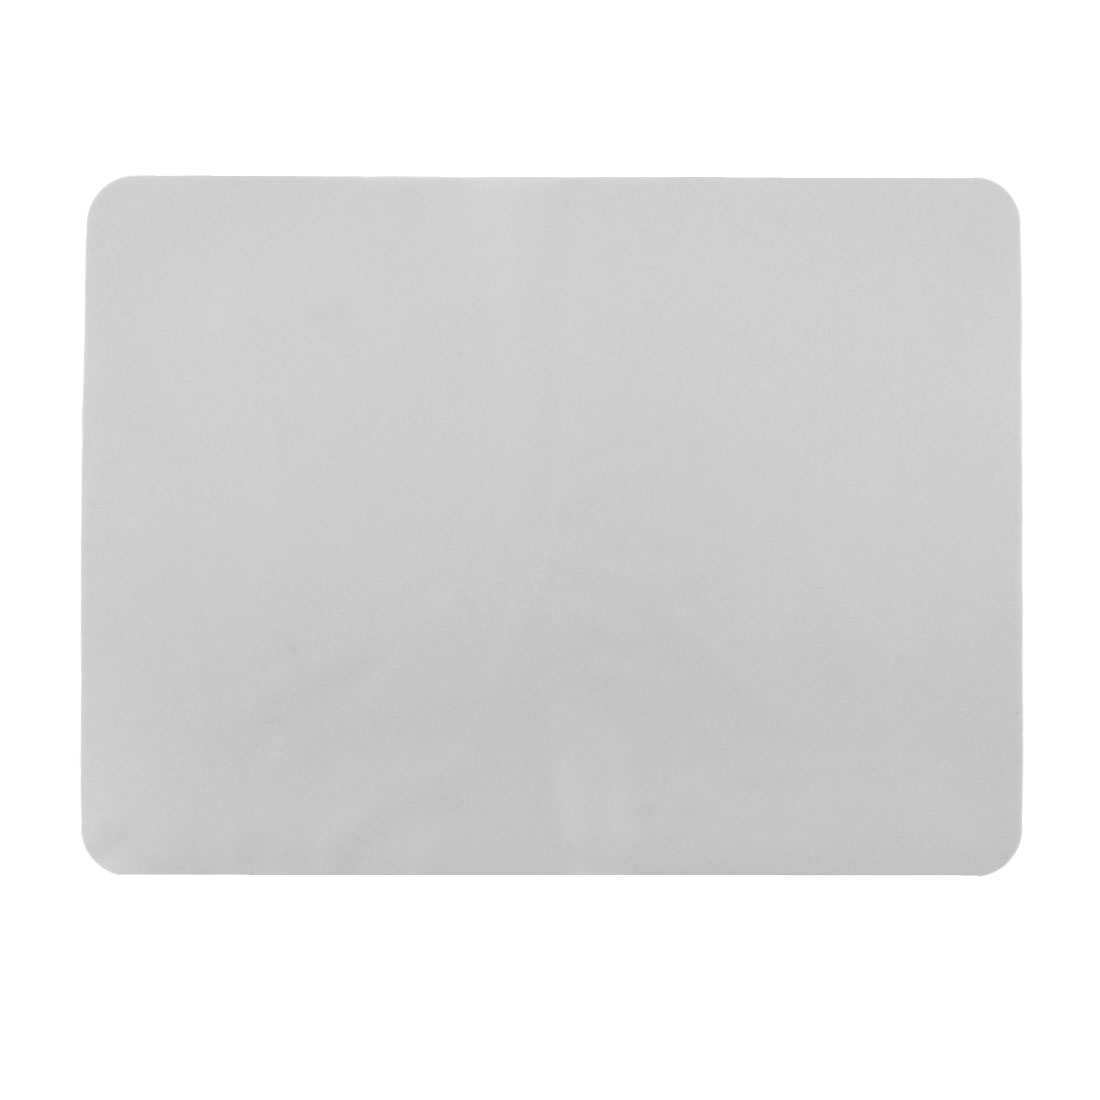 Restaurant Silicone Table Heat Resistant Mat Cushion Placemat Clear White 40 x 30cm